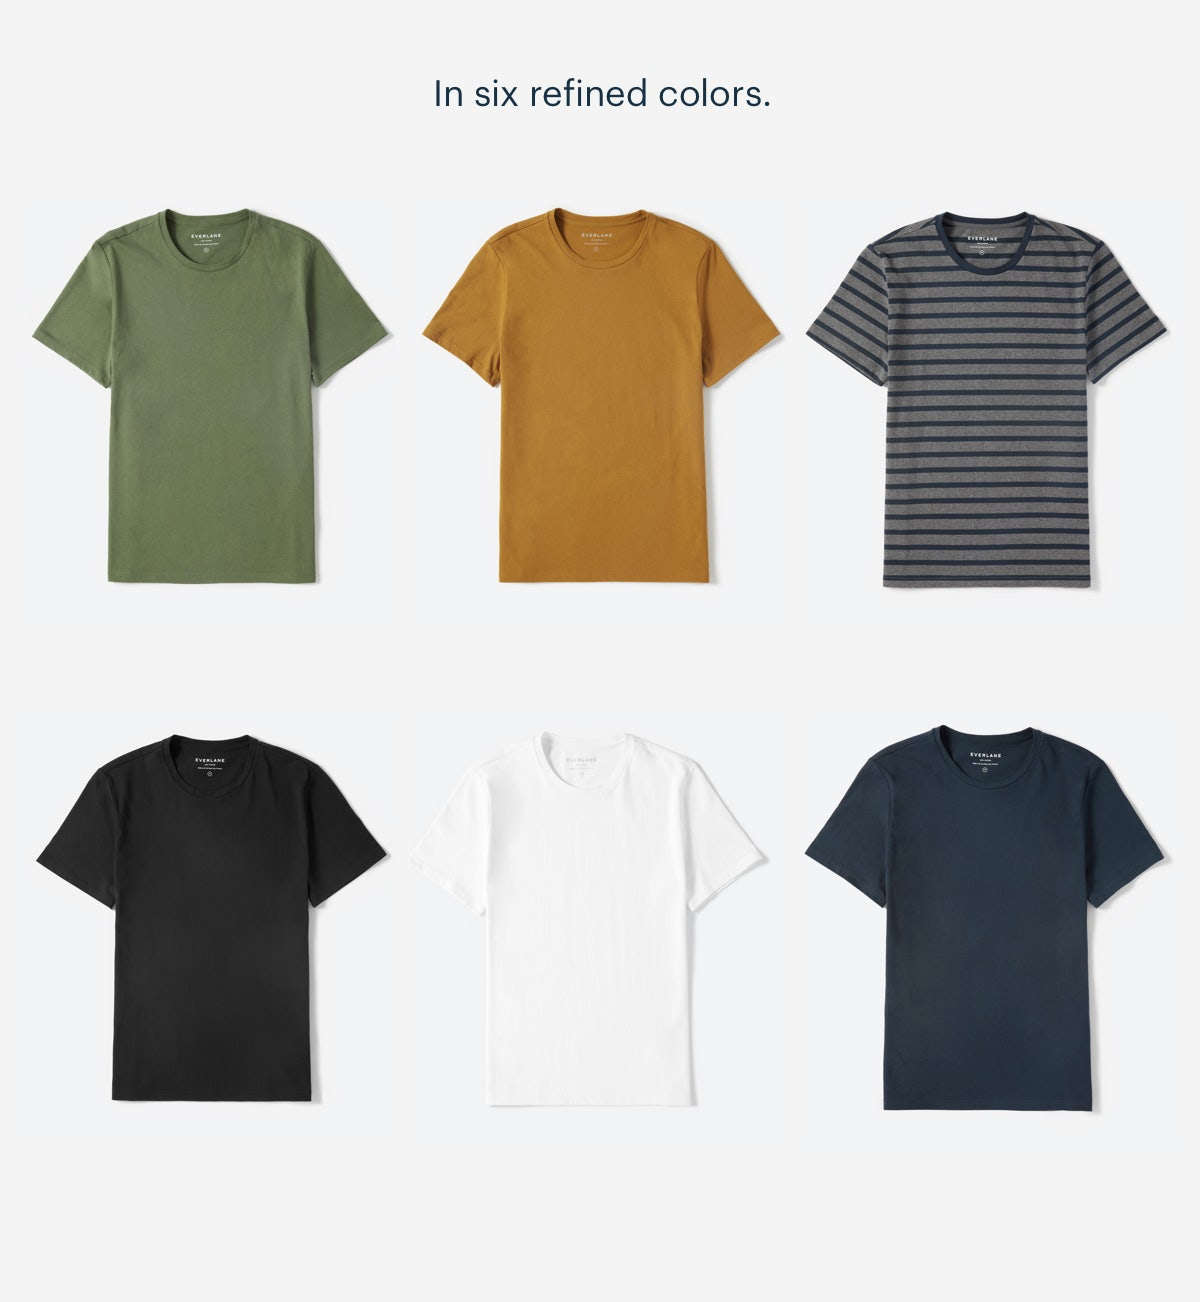 In six refined colors.